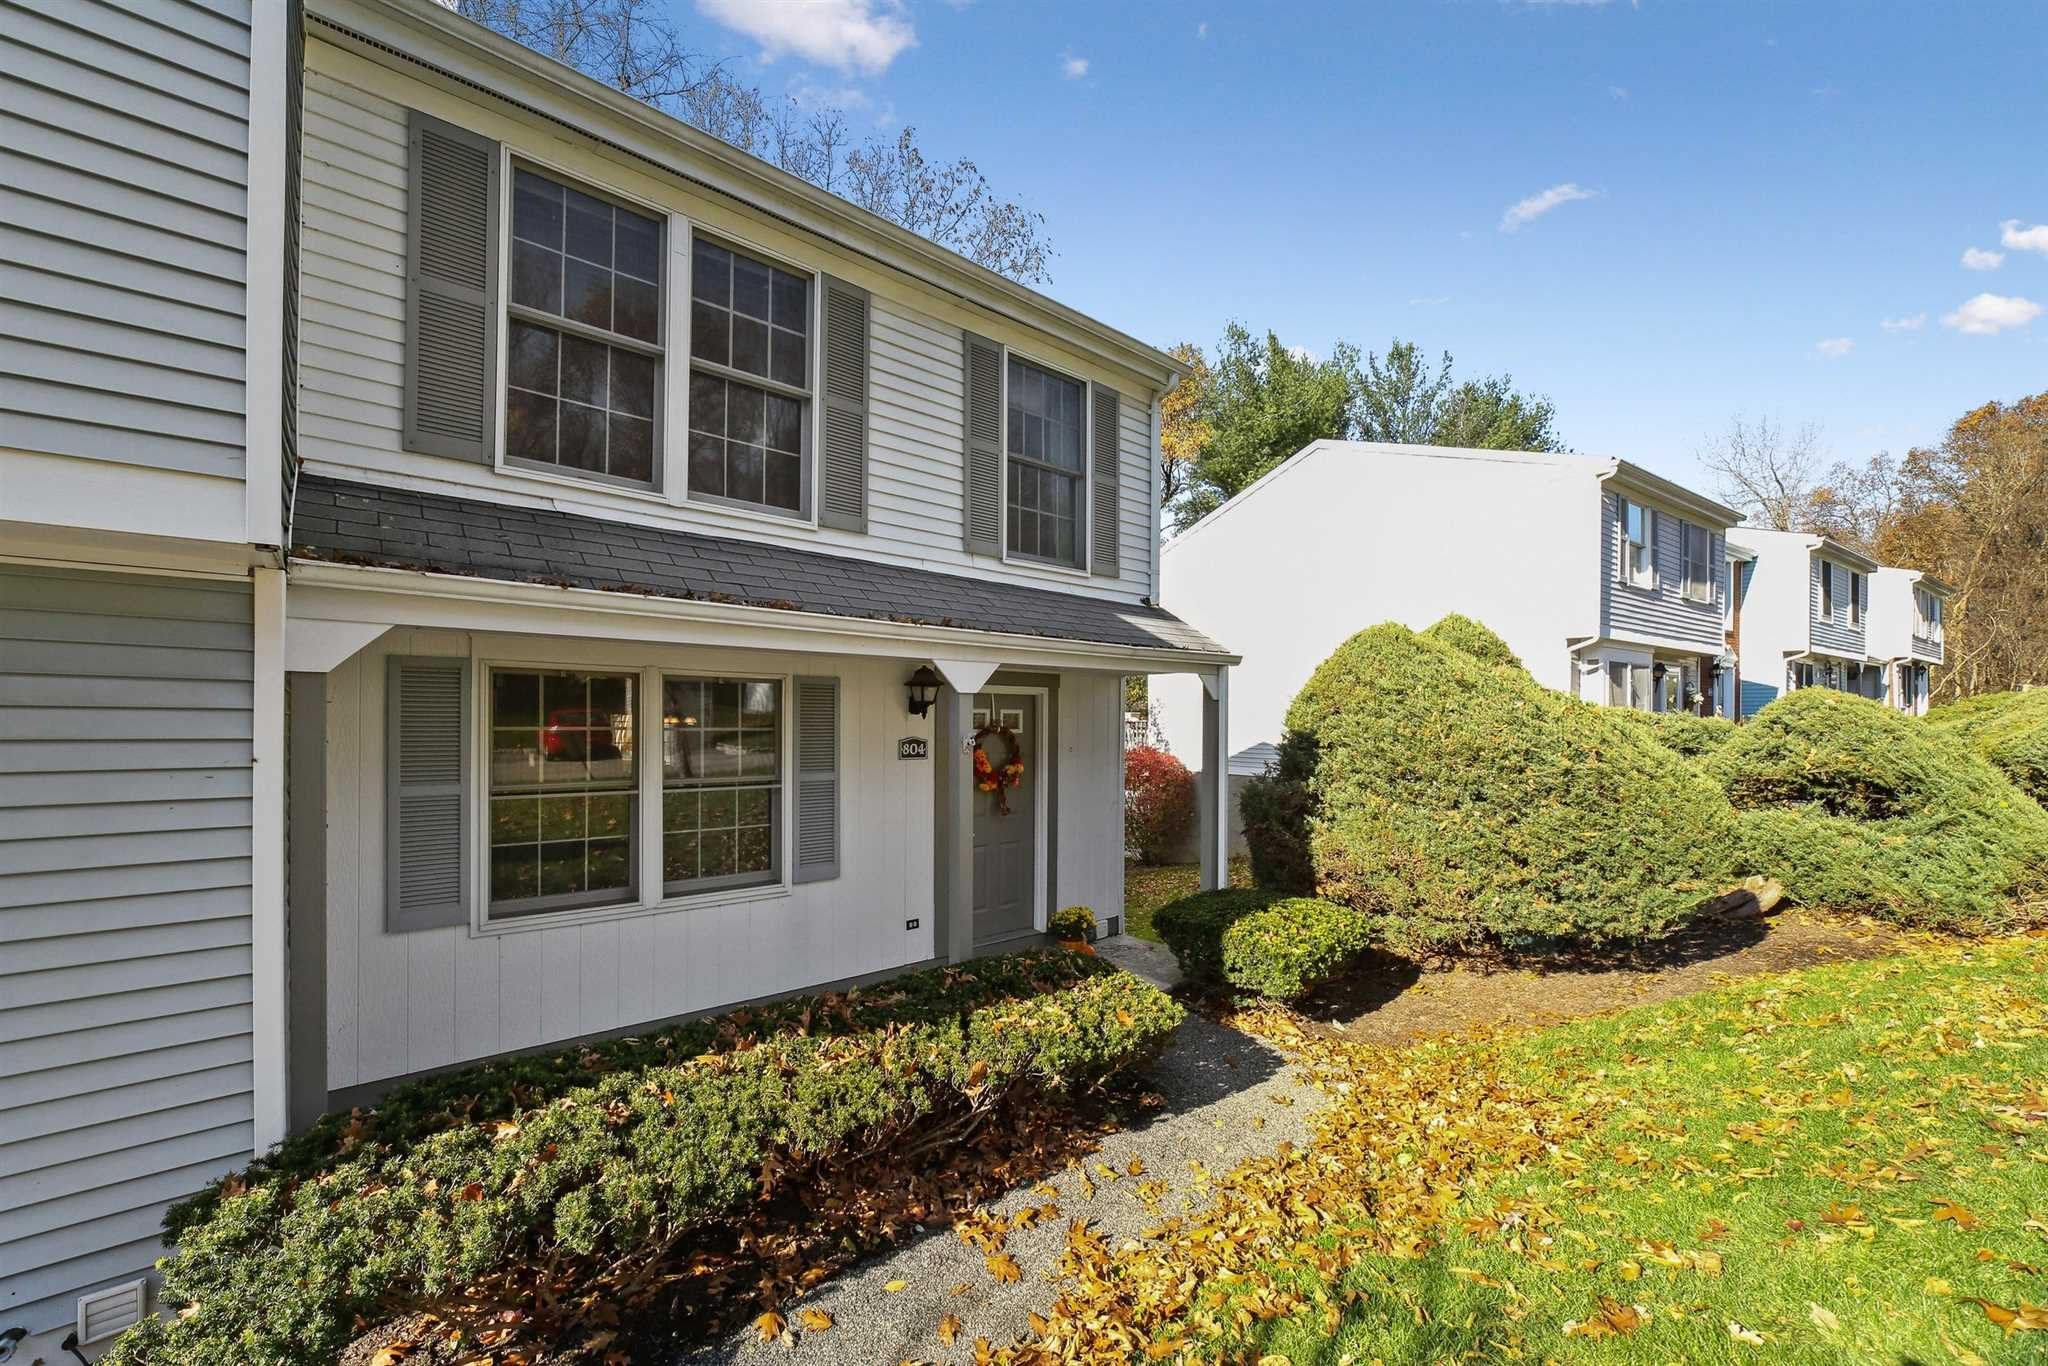 804 KINGS WAY Carmel, NY 10512 - MLS #: 376802